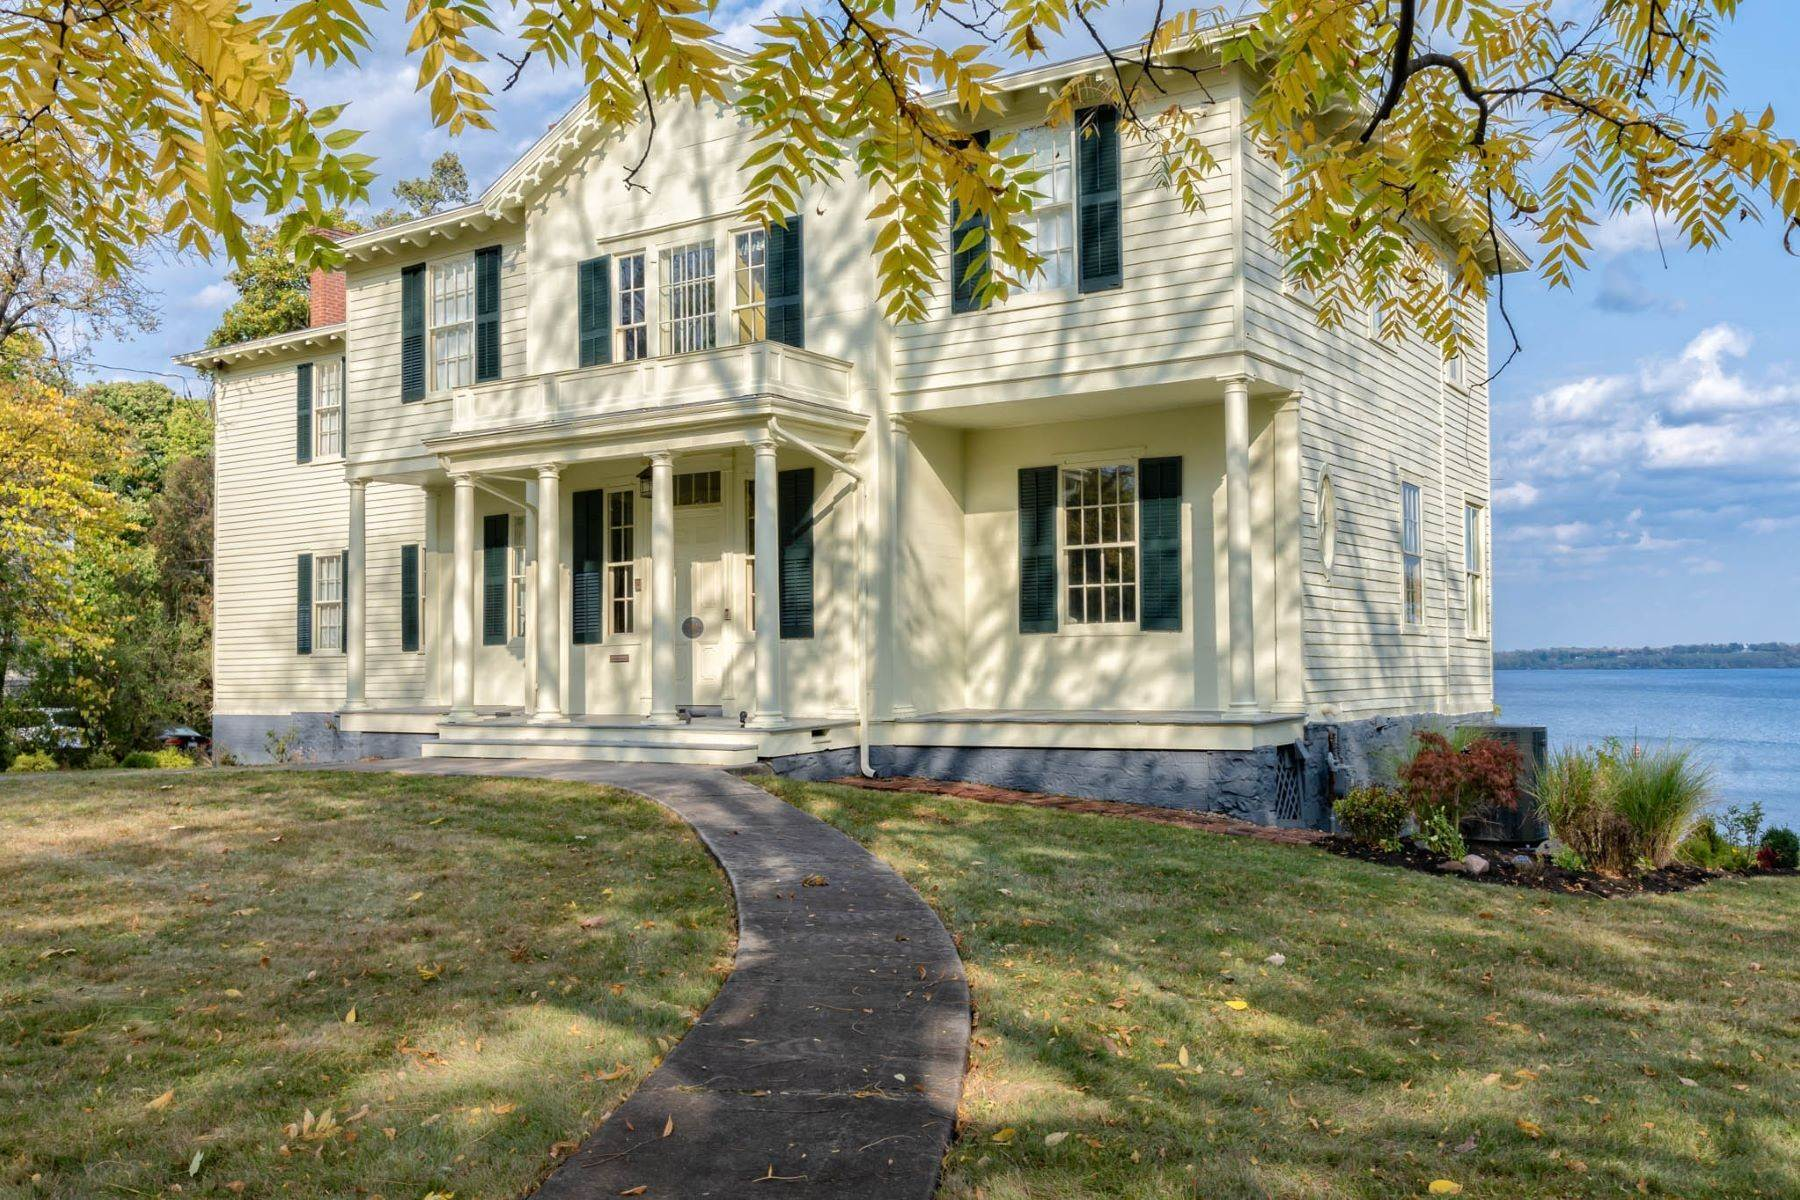 Single Family Homes for Sale at Eclectic Colonial on Seneca Lake 789 South Main Street Geneva, New York 14456 United States